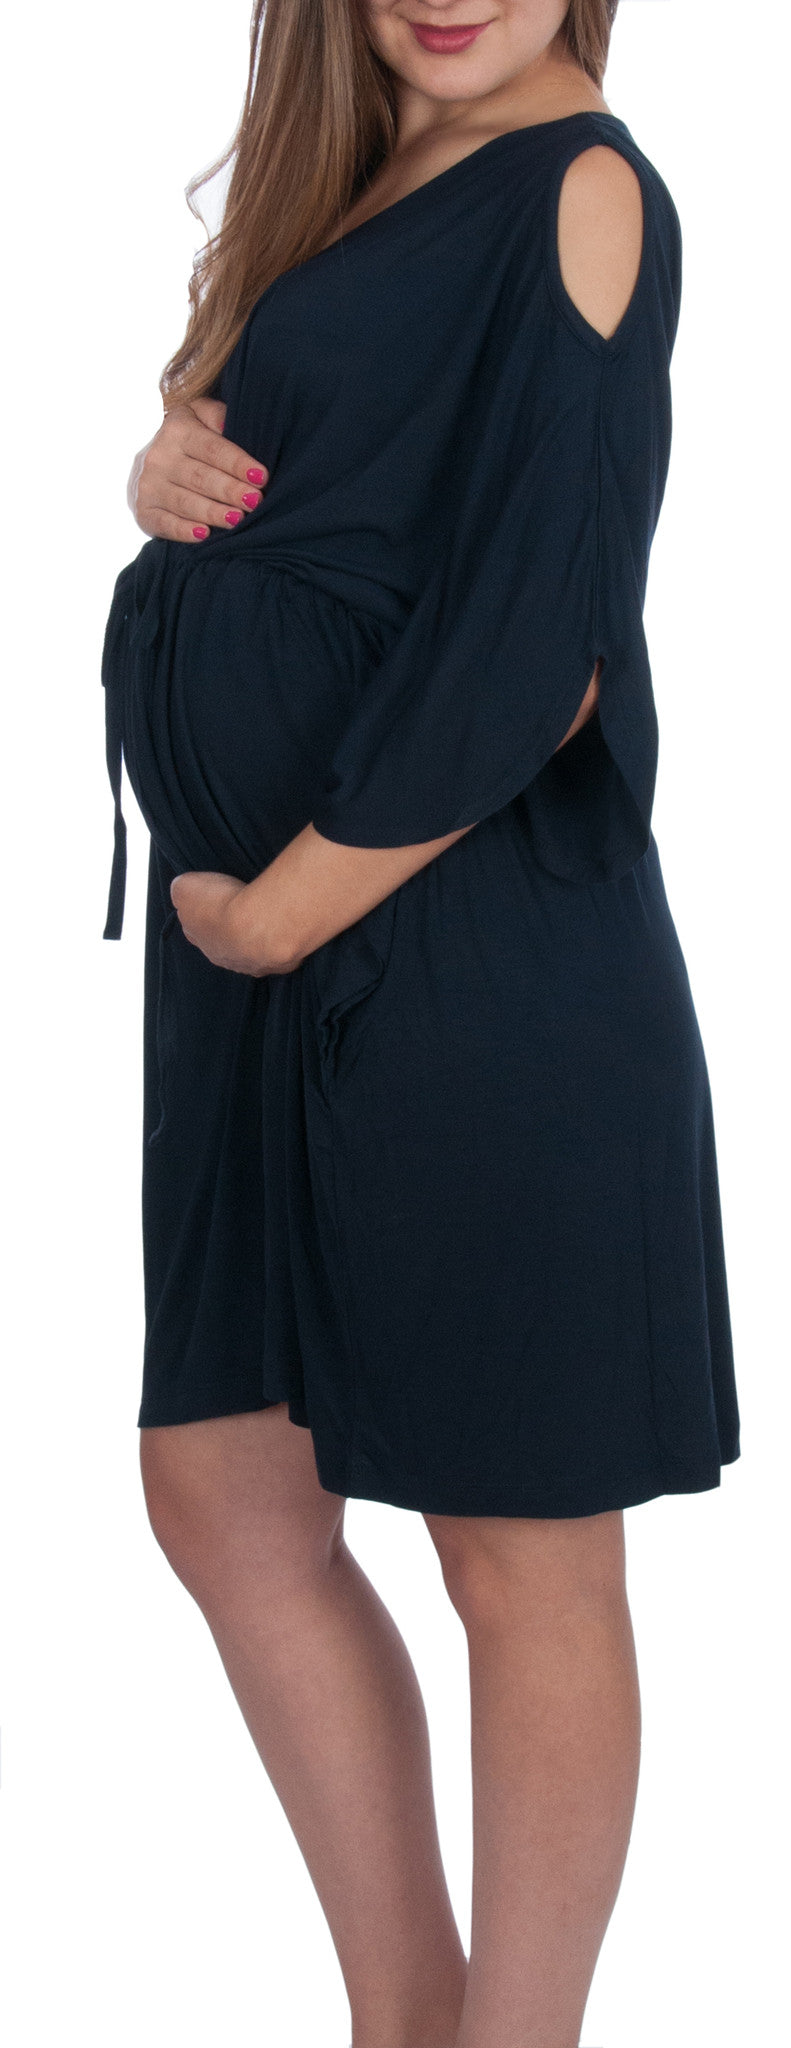 Kaftans Maternity Hospital Gown Ankle length Maternity Robe Purple Front and Snaps down back gown delivery To be Mom Kimono Robe Pregnant